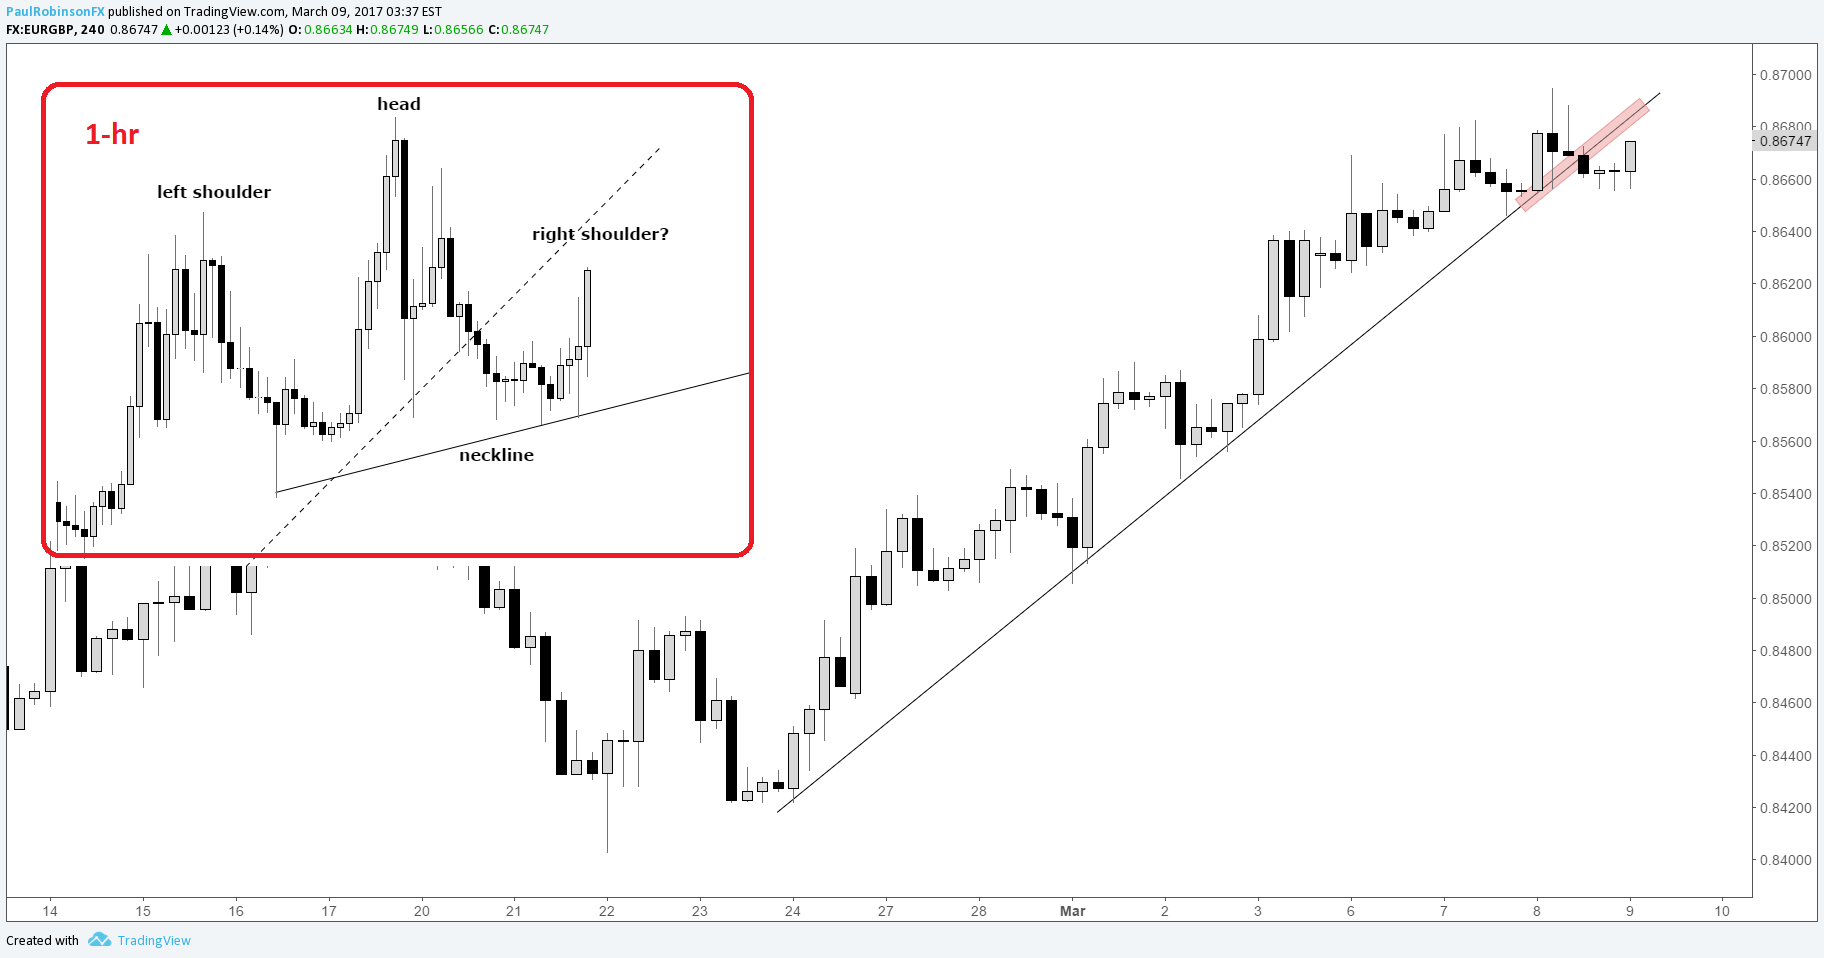 EURGBP Outlook: Testing Trend-line Resistance Ahead of ECB